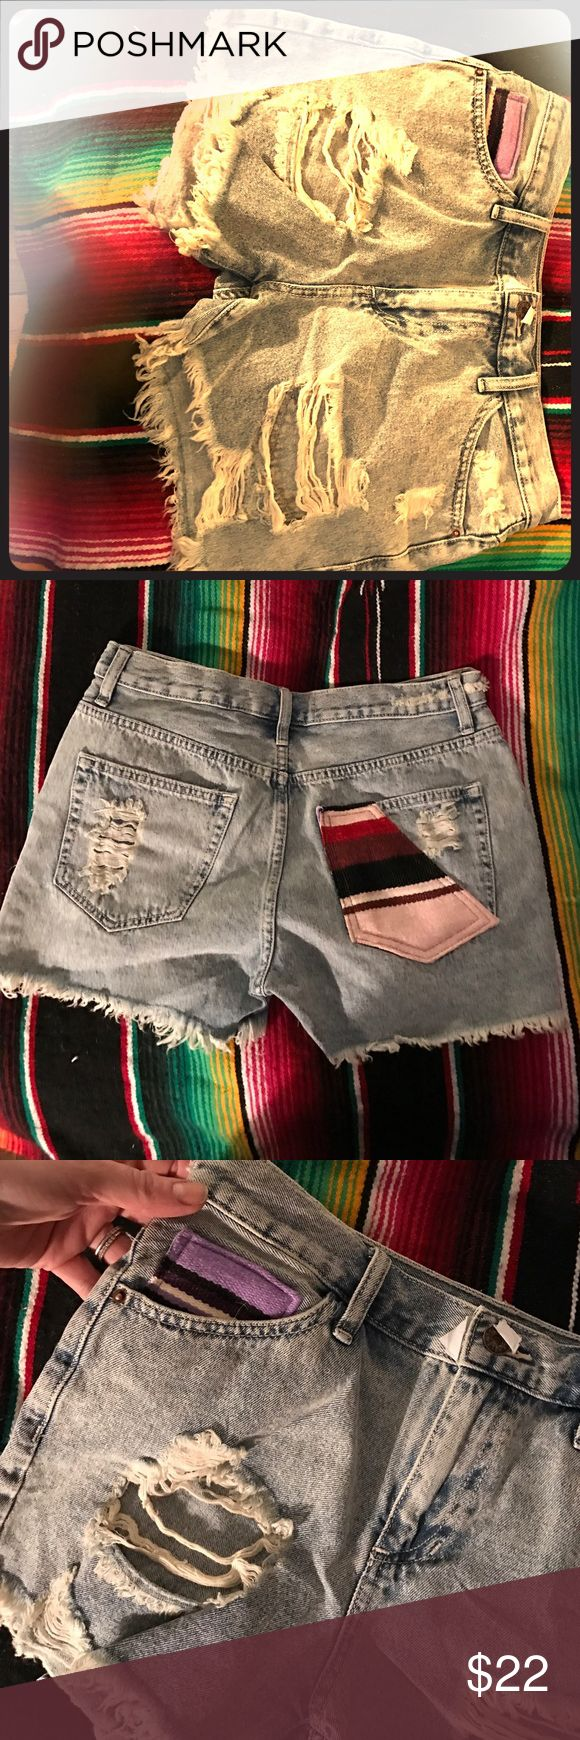 Your fav jean cutoffs w/serape Mexican patches Gorgeous semi hi waisted festival shorts! Distressed in all the right places. Old school meets new school with beautiful Mexican m serepe blanket detail on the small front pocket and back pocket. You'll love and live in these and these and they will go fast! NWOT SEE BUTTON Three Bird Nest Shorts Jean Shorts